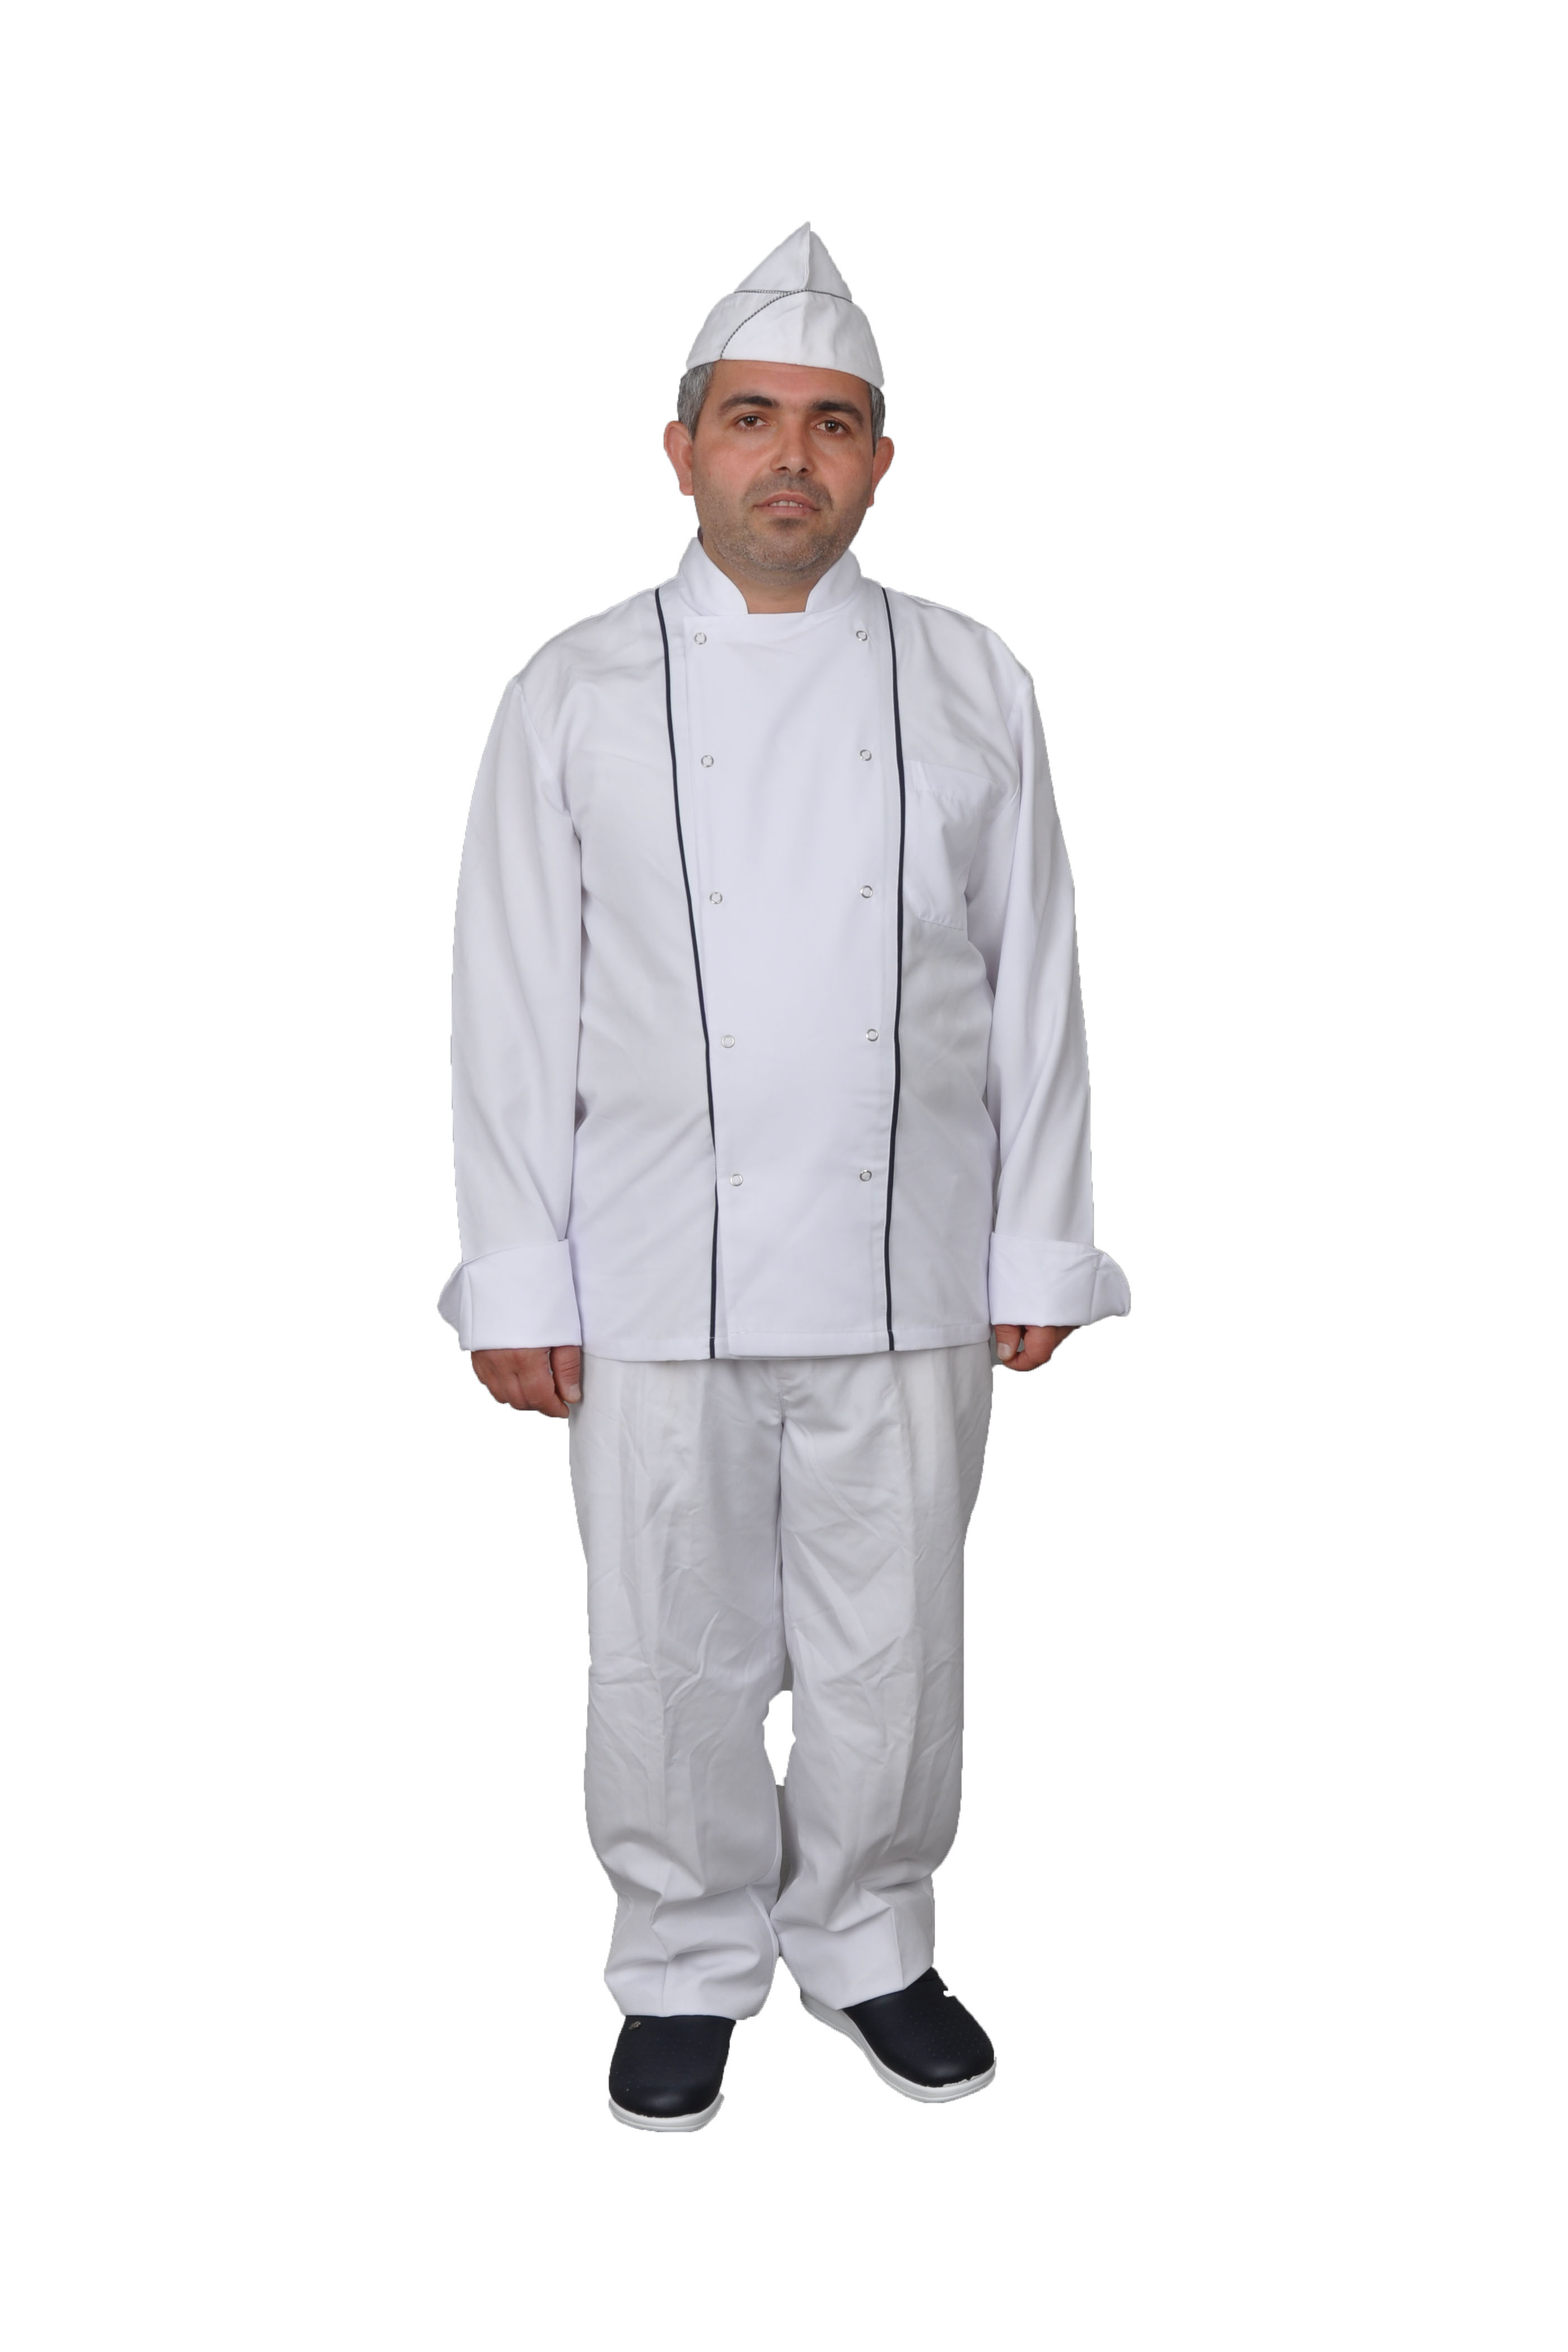 Cook Clothing and Pants